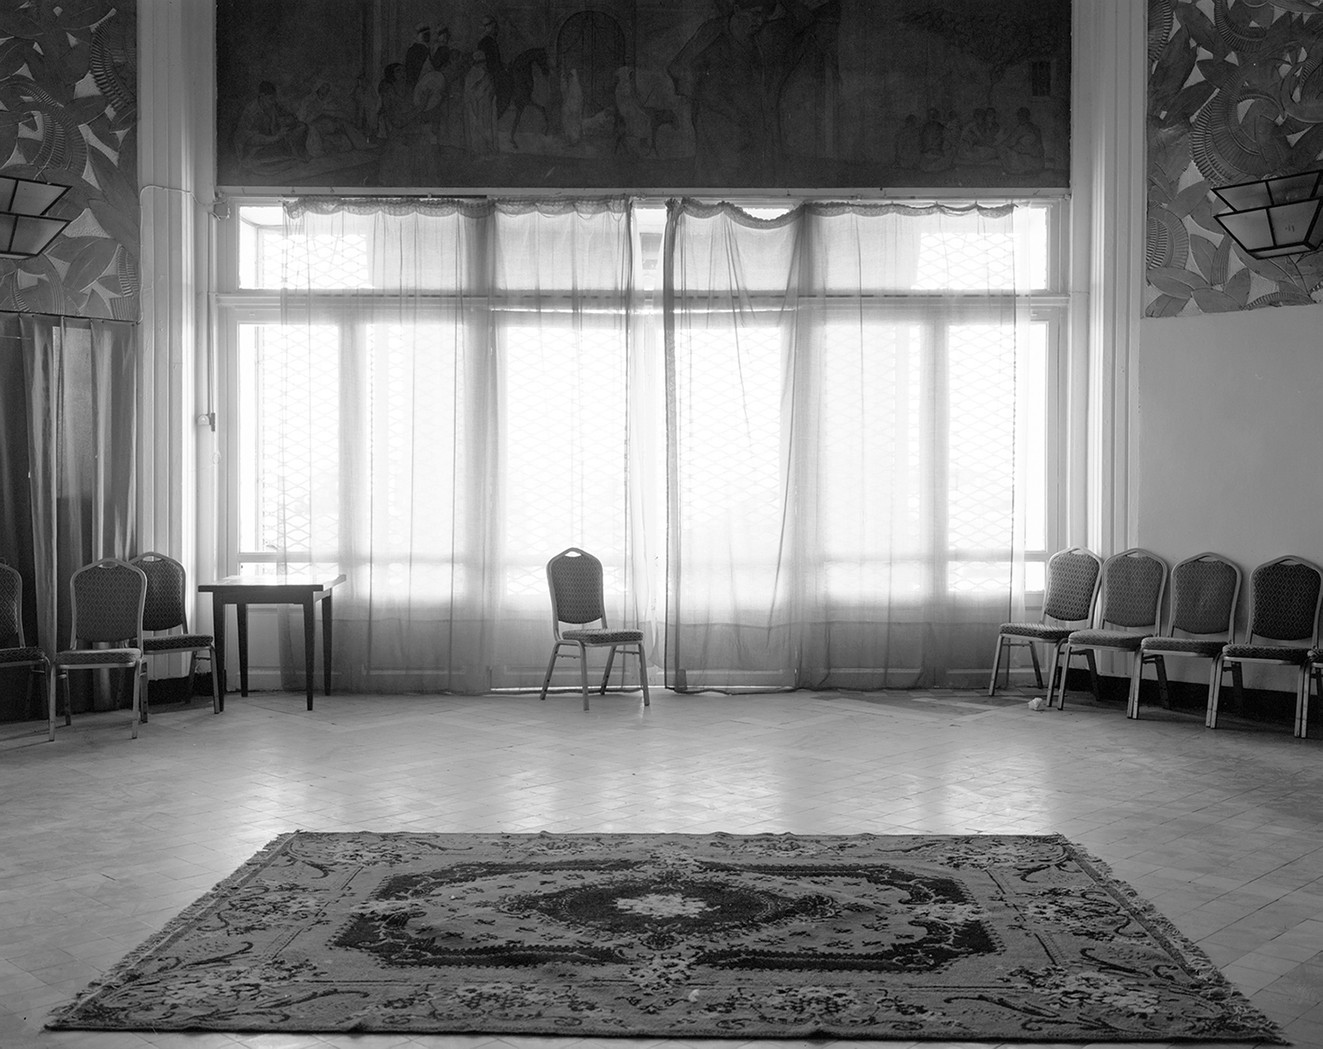 Foreign Office, Chromogenic C-Prints, Bouchra Khalili, 2015. Hôtel El Safir, Ex-Aletti, Algiers City Center, Residence of the Black Panther Party delegation duringthe 1969, Pan-African Festival of Algiers;